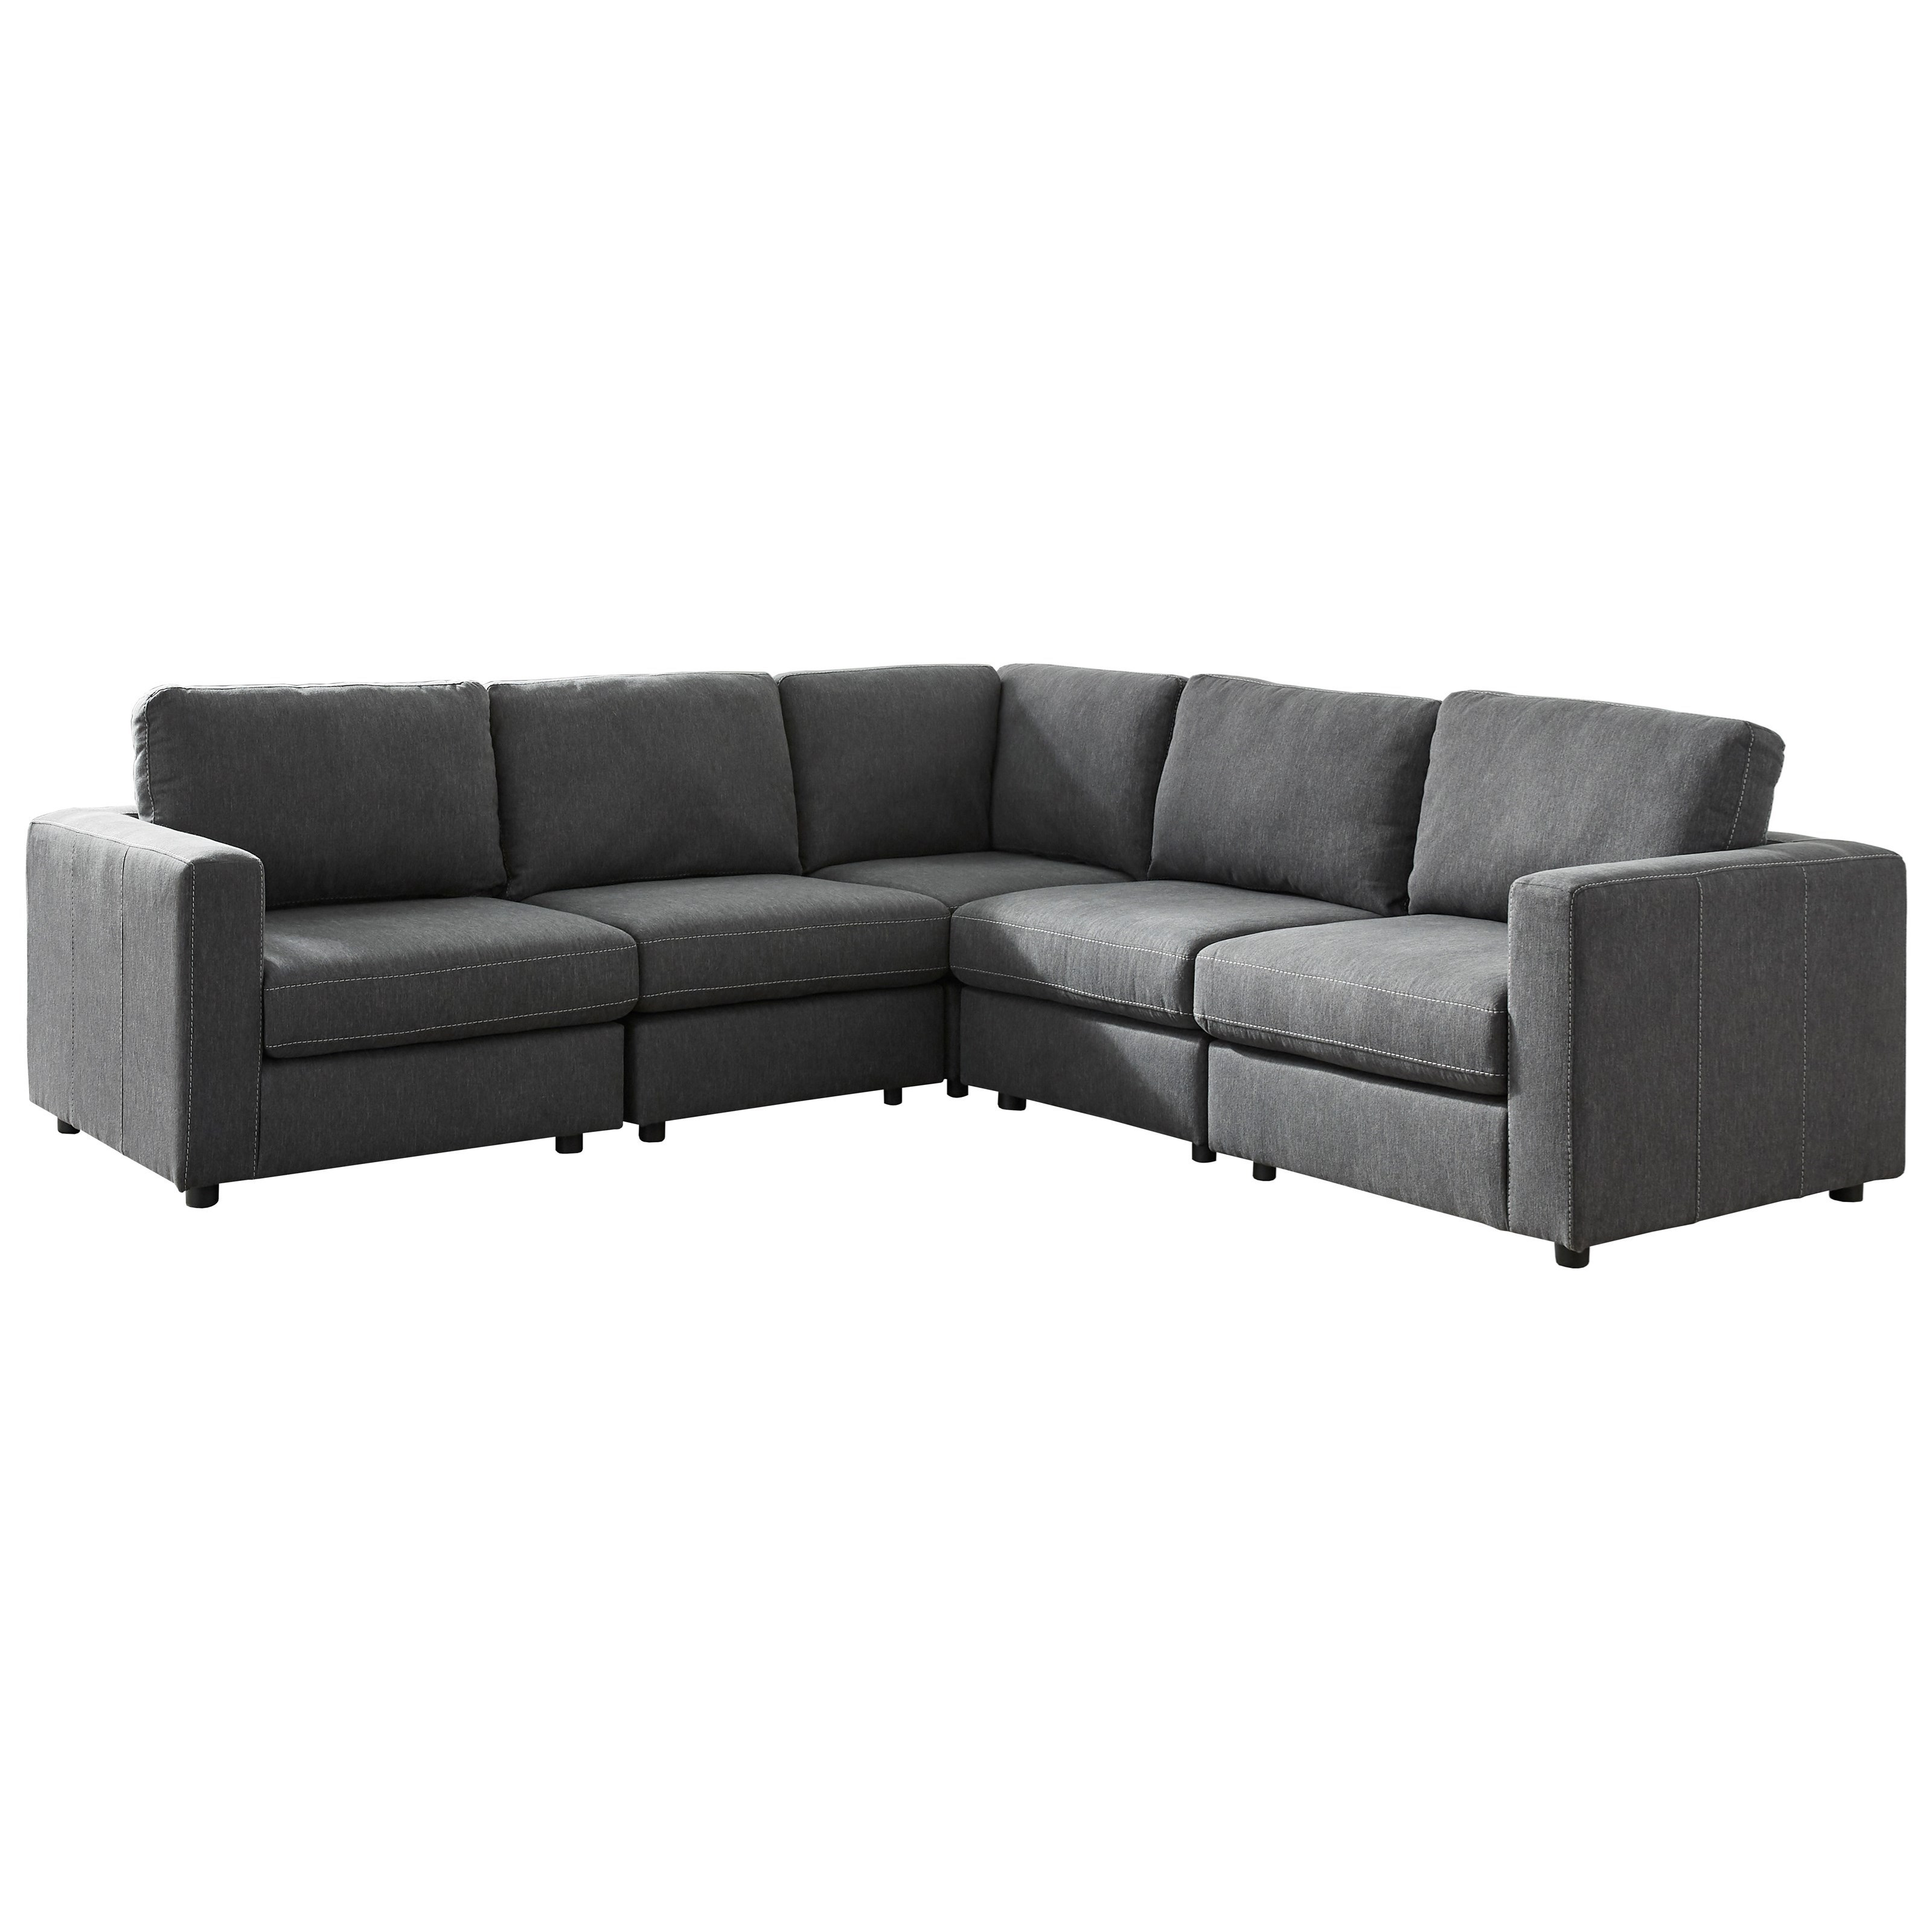 Candela L-Shape Sectional by Signature Design by Ashley at Standard Furniture